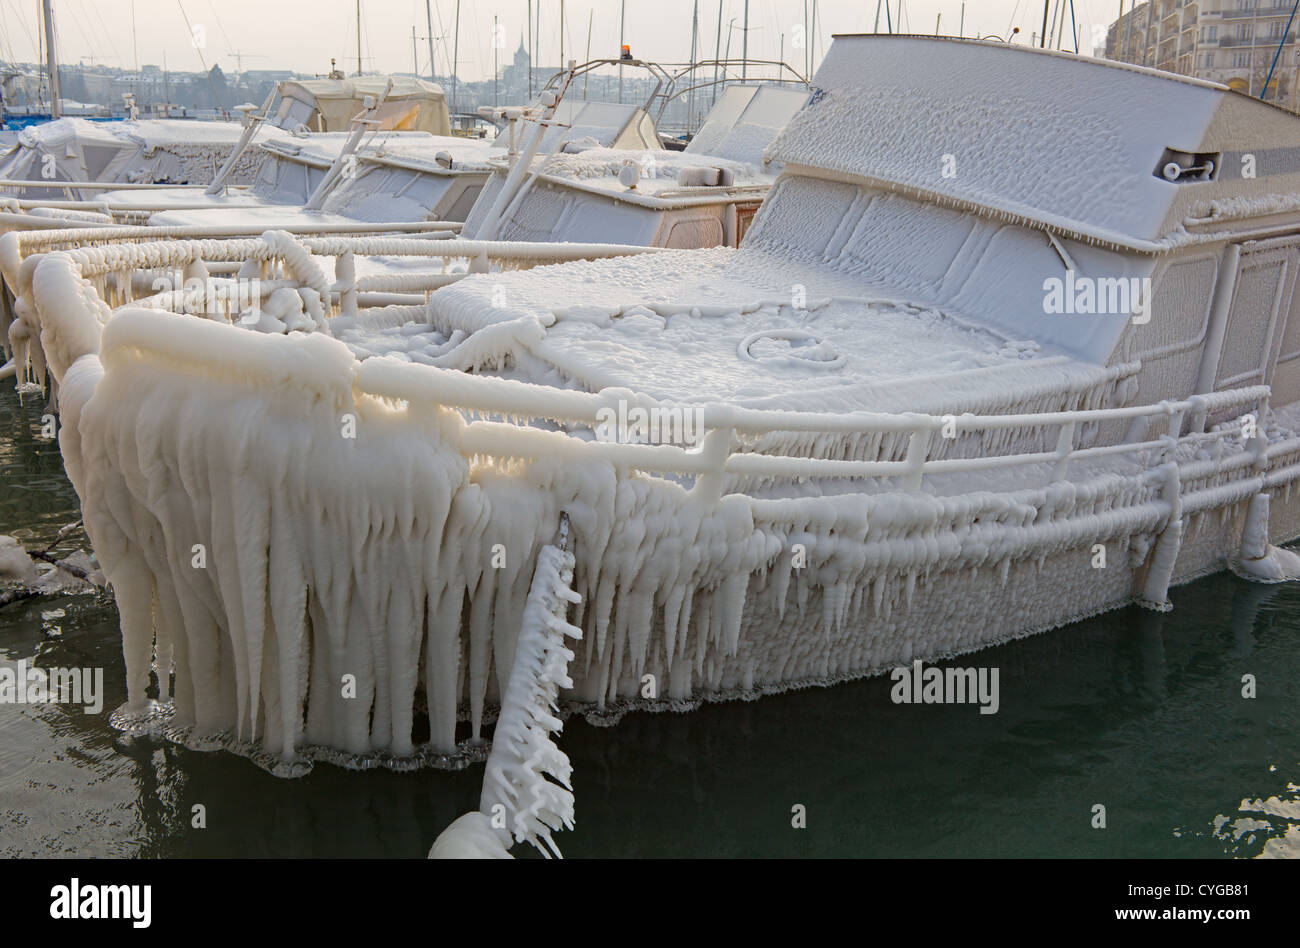 Motorboat frozen solid and full of ice in a harbour port at Geneva - Stock Image